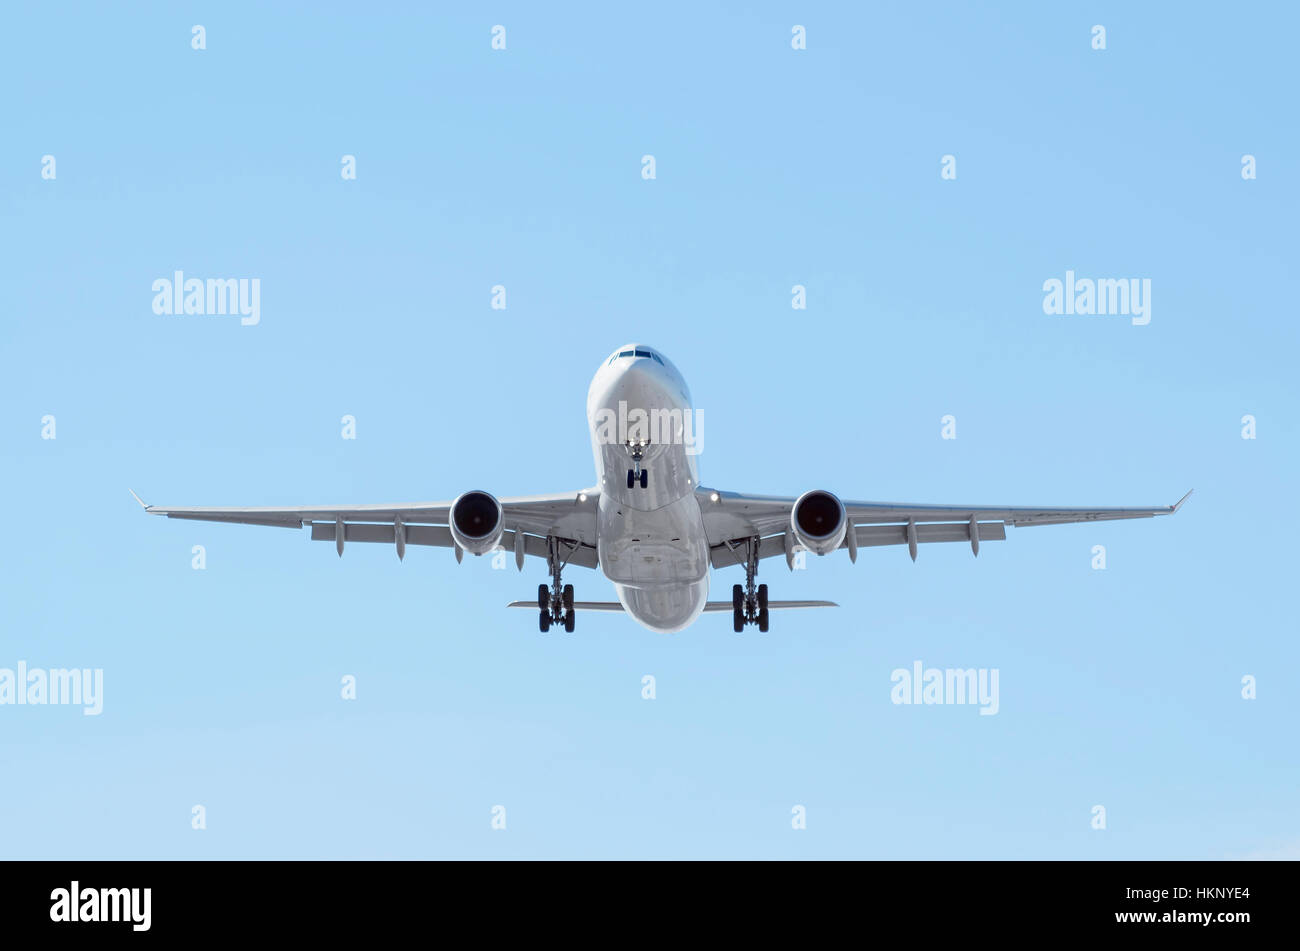 Airplane Airbus A330, of Iberia airline. Blue sky. Front view - Stock Image